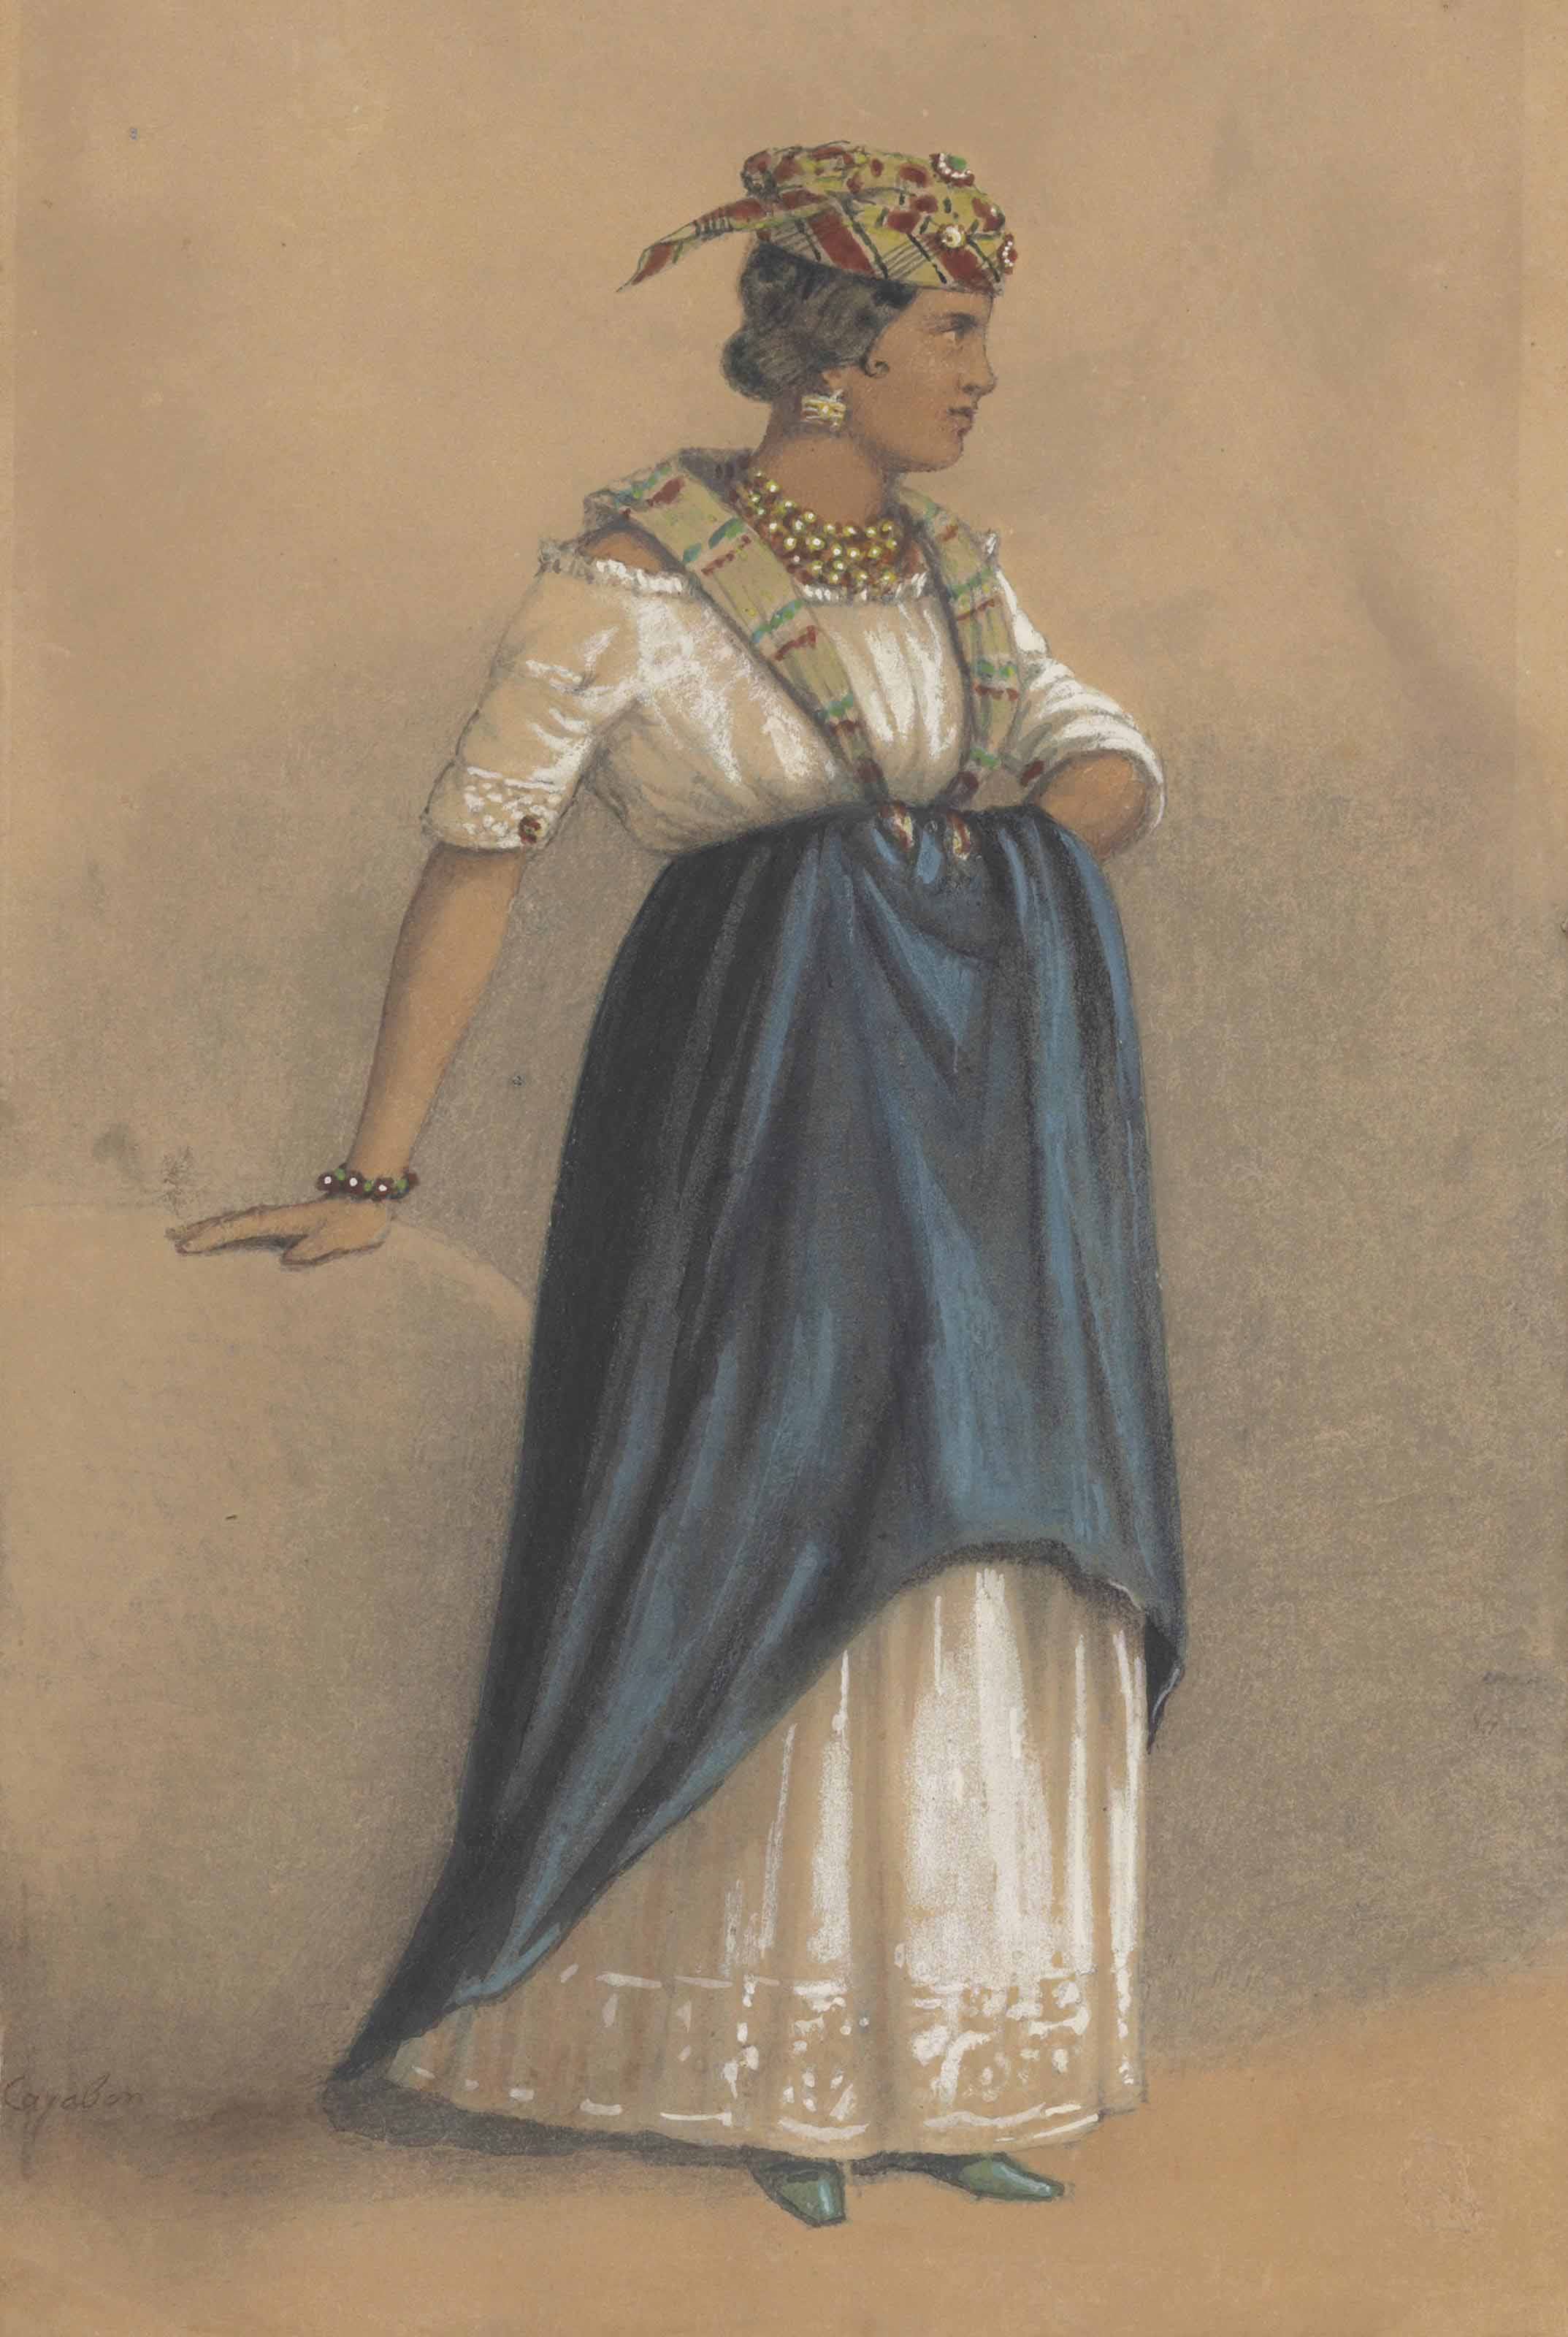 Painting of a woman dressed in traditional Afro-Caribbean dress.